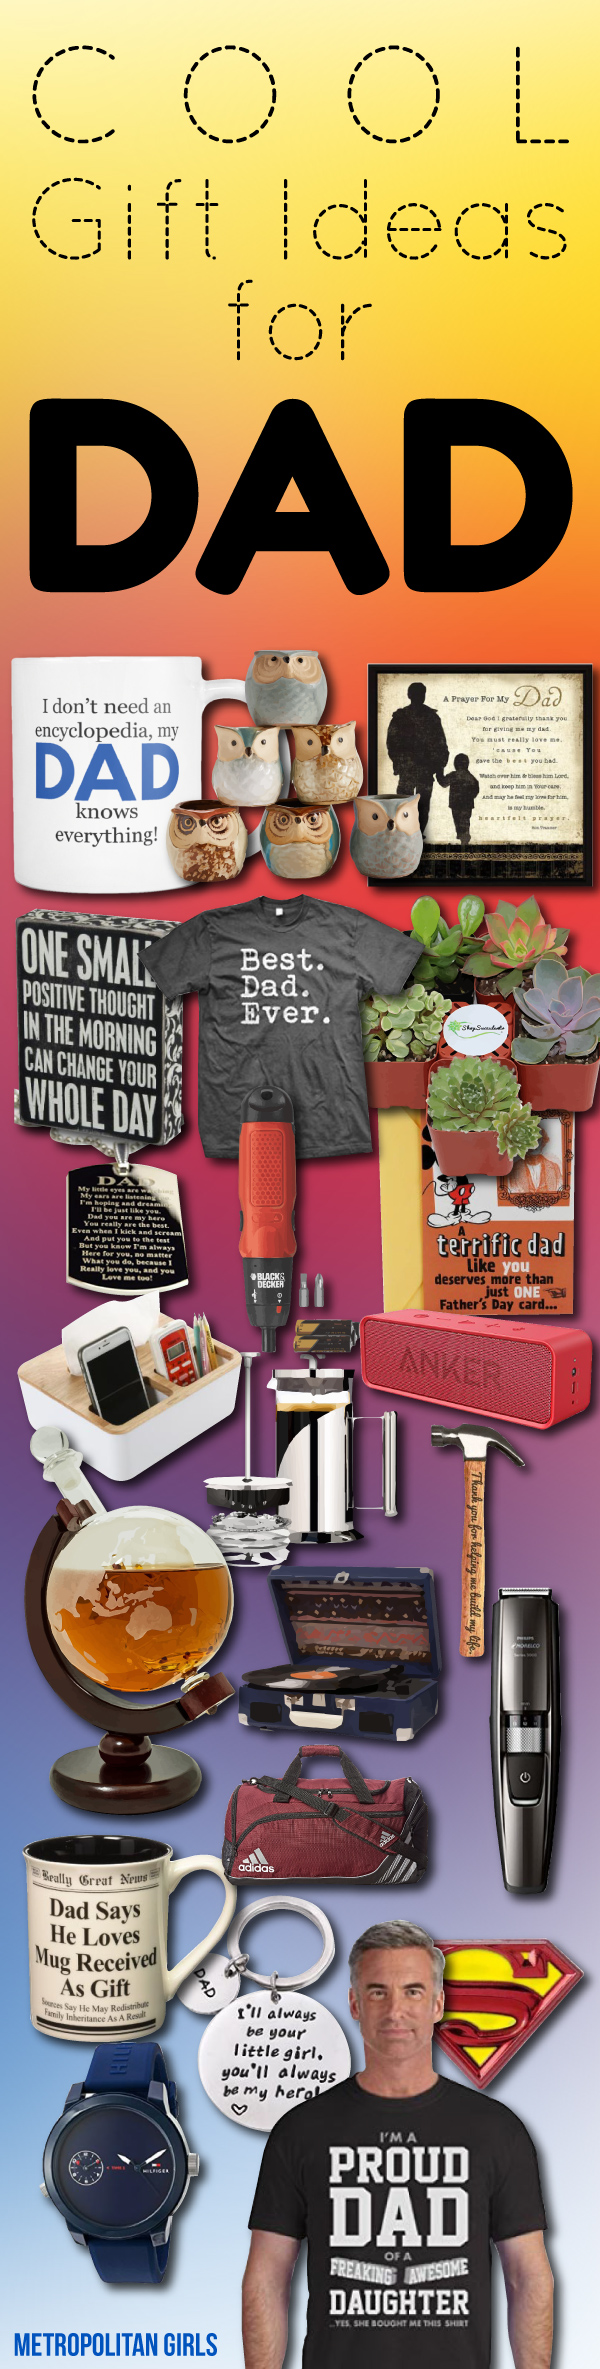 Cool gift ideas for dad - fathers day gifts from daughter